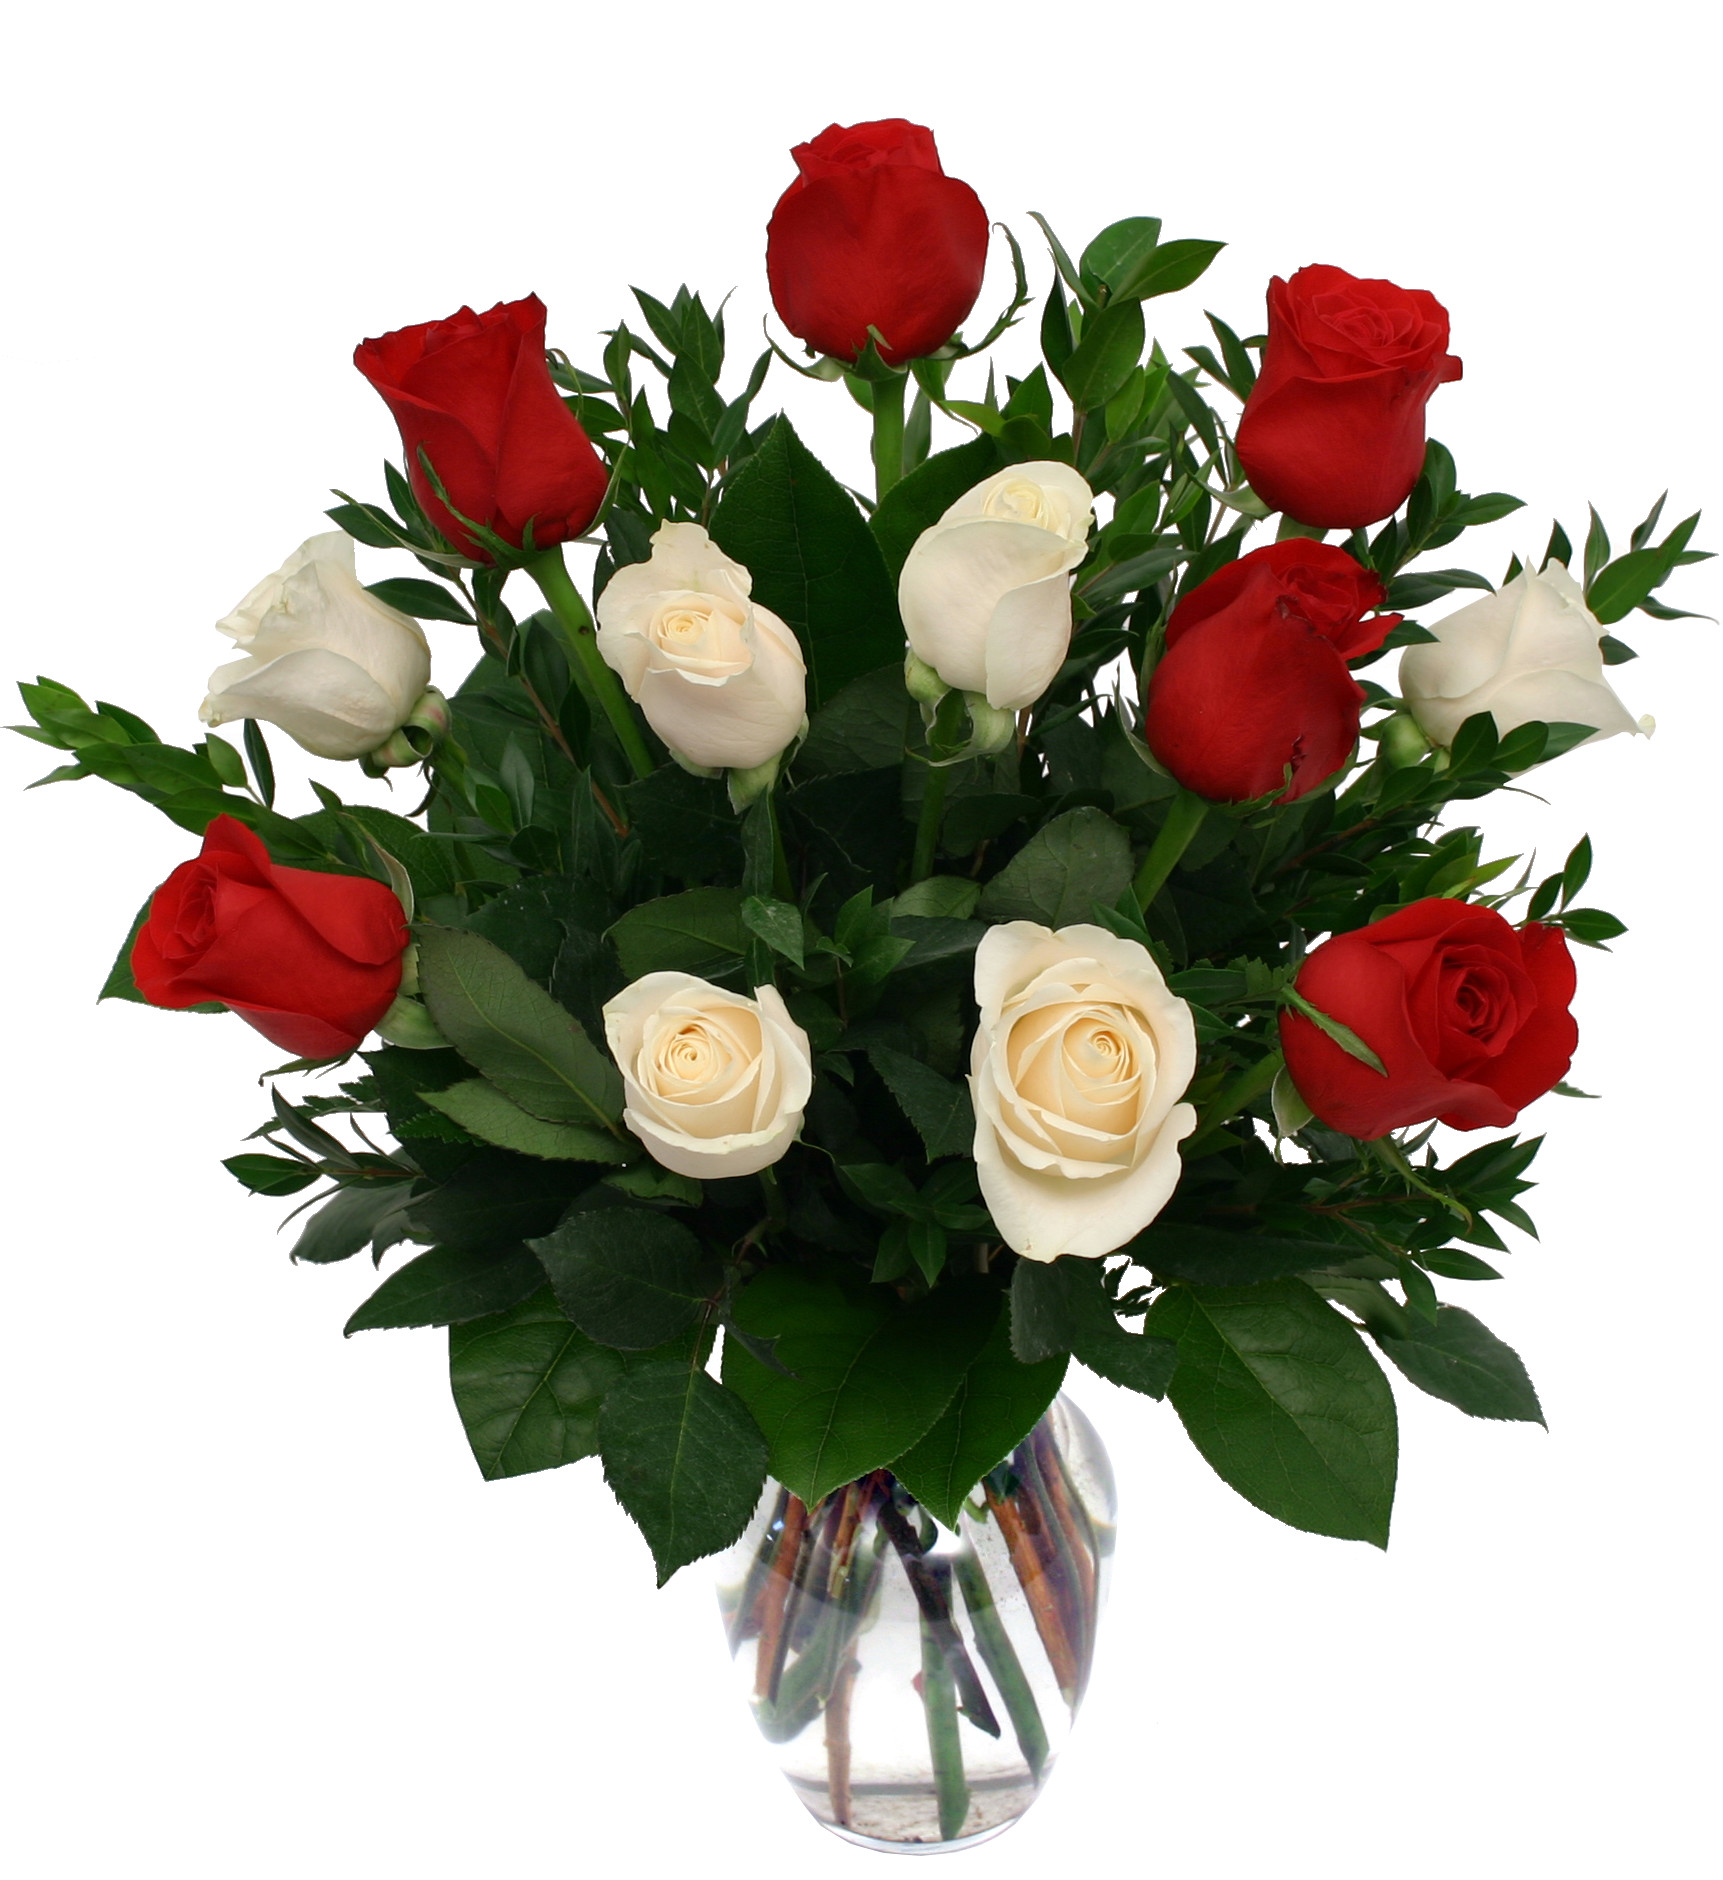 Red and White Roses For Her